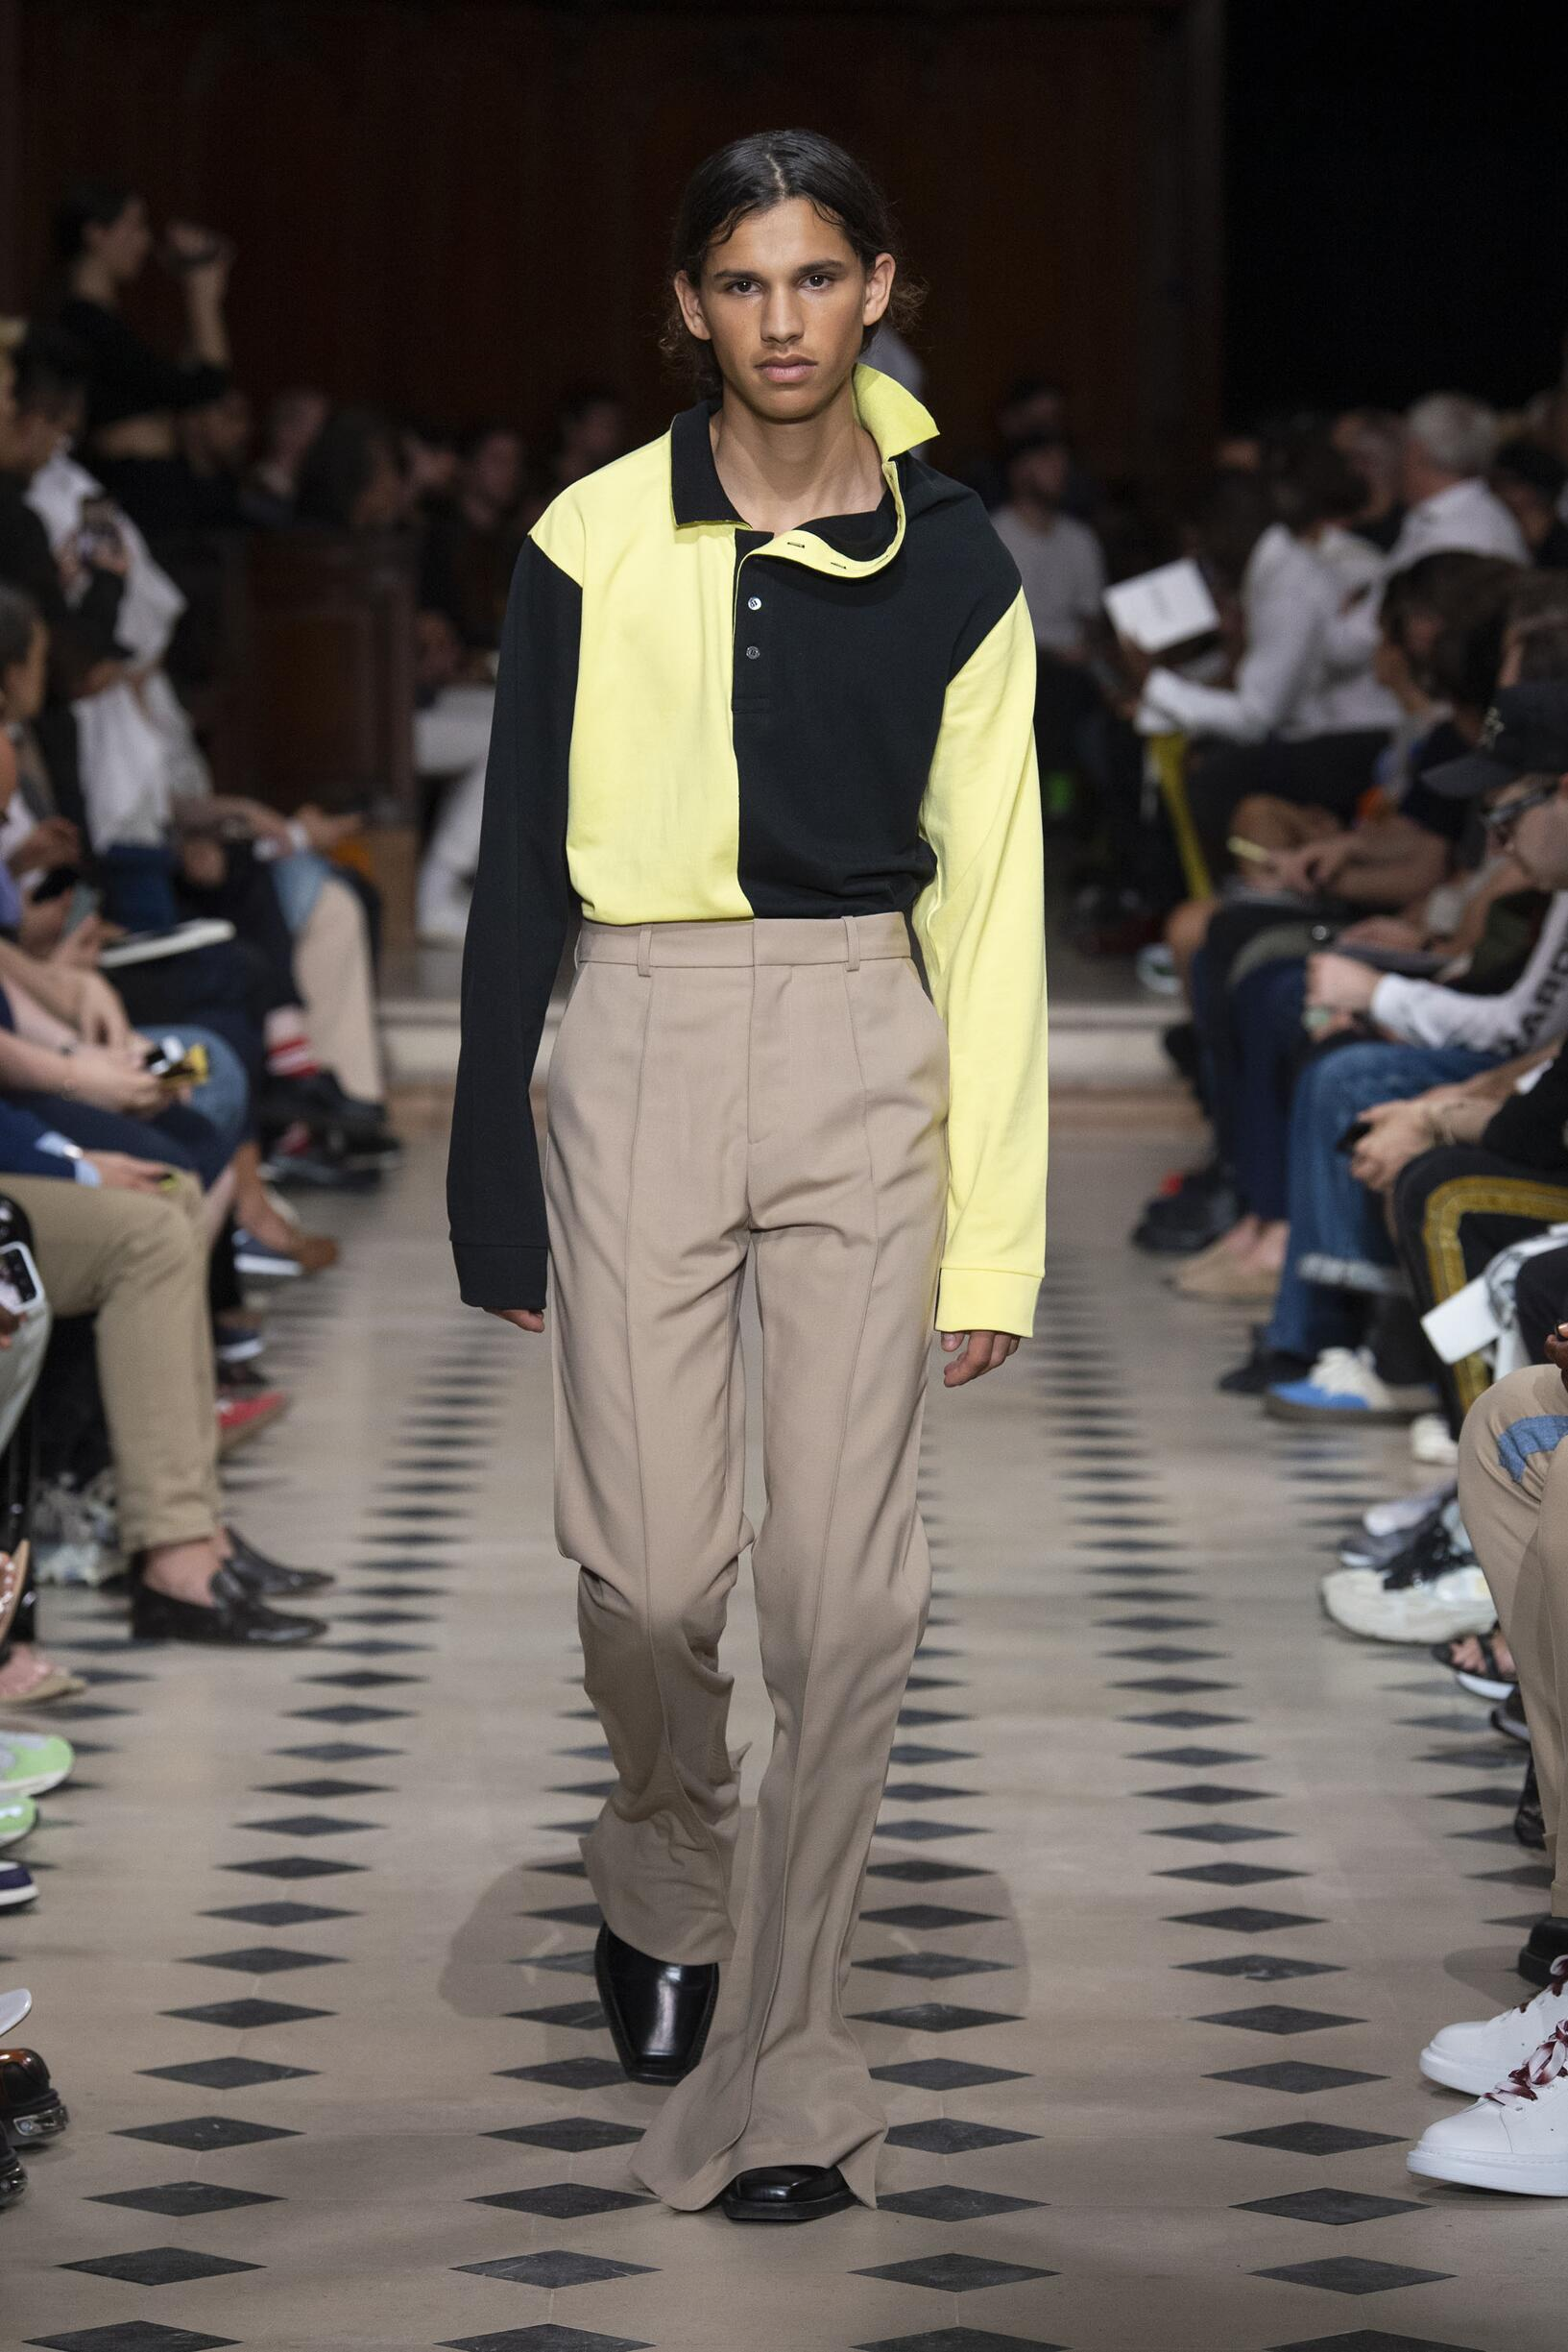 Man SS 2020 Y/Project Show Paris Fashion Week